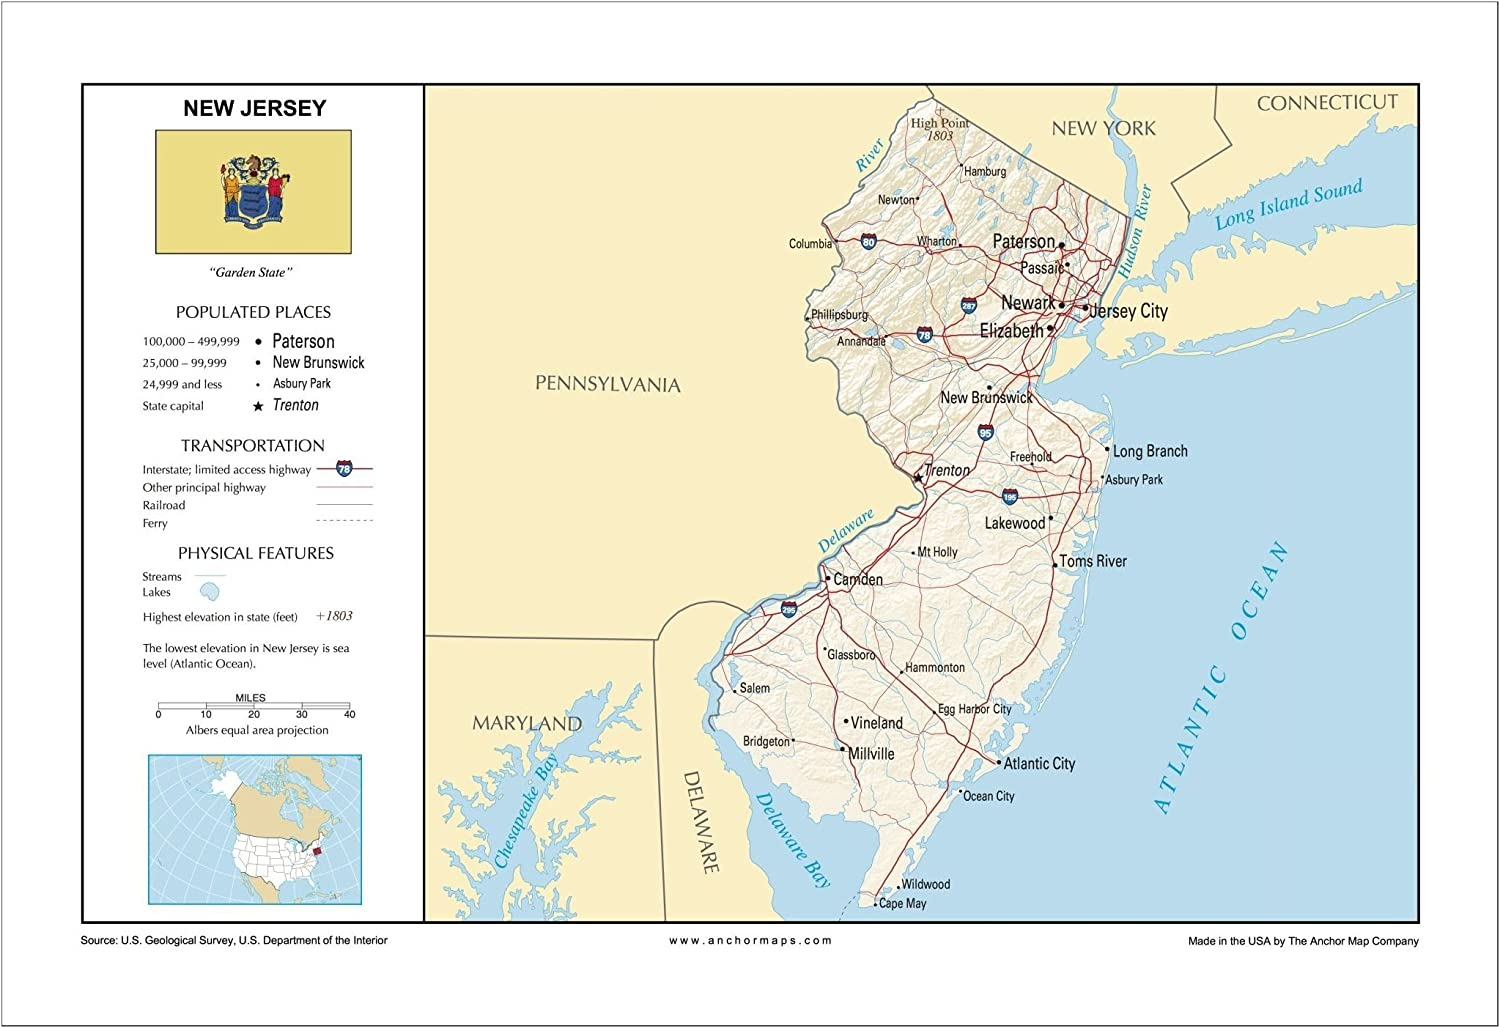 Amazon.com : 13x19 New Jersey General Reference Wall Map ... on east coast map, north dakota map, mississippi map, monmouth county map, delaware map, connecticut map, new hampshire map, georgia map, northeast map, pennsylvania map, indiana map, texas map, new york map, minnesota map, louisiana map, rhode island map, michigan map, north carolina map, iowa map, kansas map, ohio map, massachusetts map, missouri map, new england map, california map, oklahoma map, nebraska map, south carolina map, maryland map, nevada map, usa map, florida map, wisconsin map, illinois map, maine map,